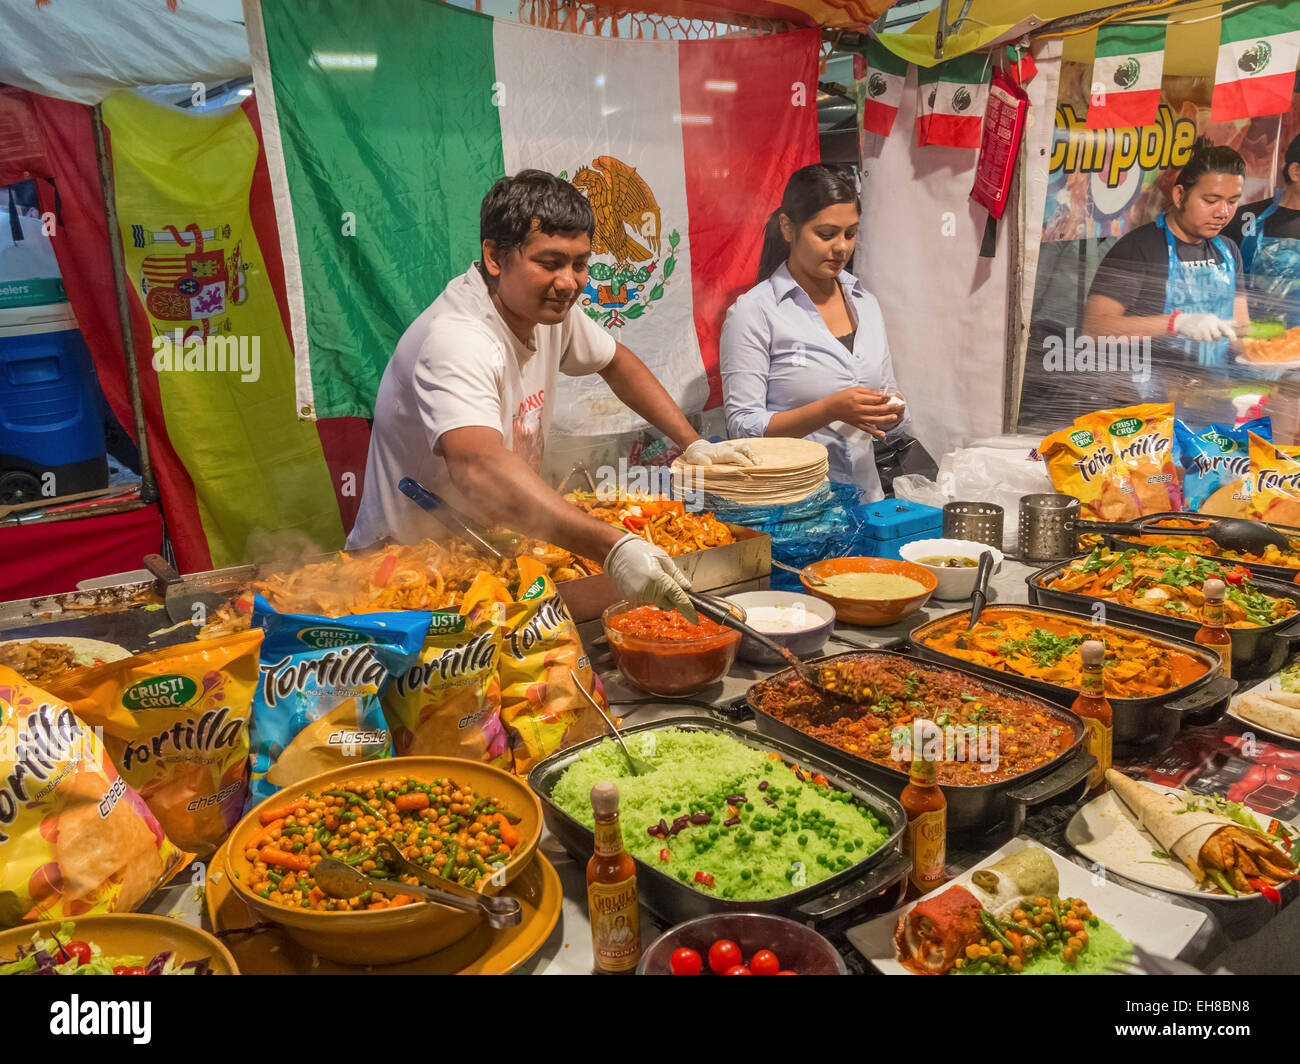 Mexican food stall in Brick Lane Market, London, England, UK - Stock Image